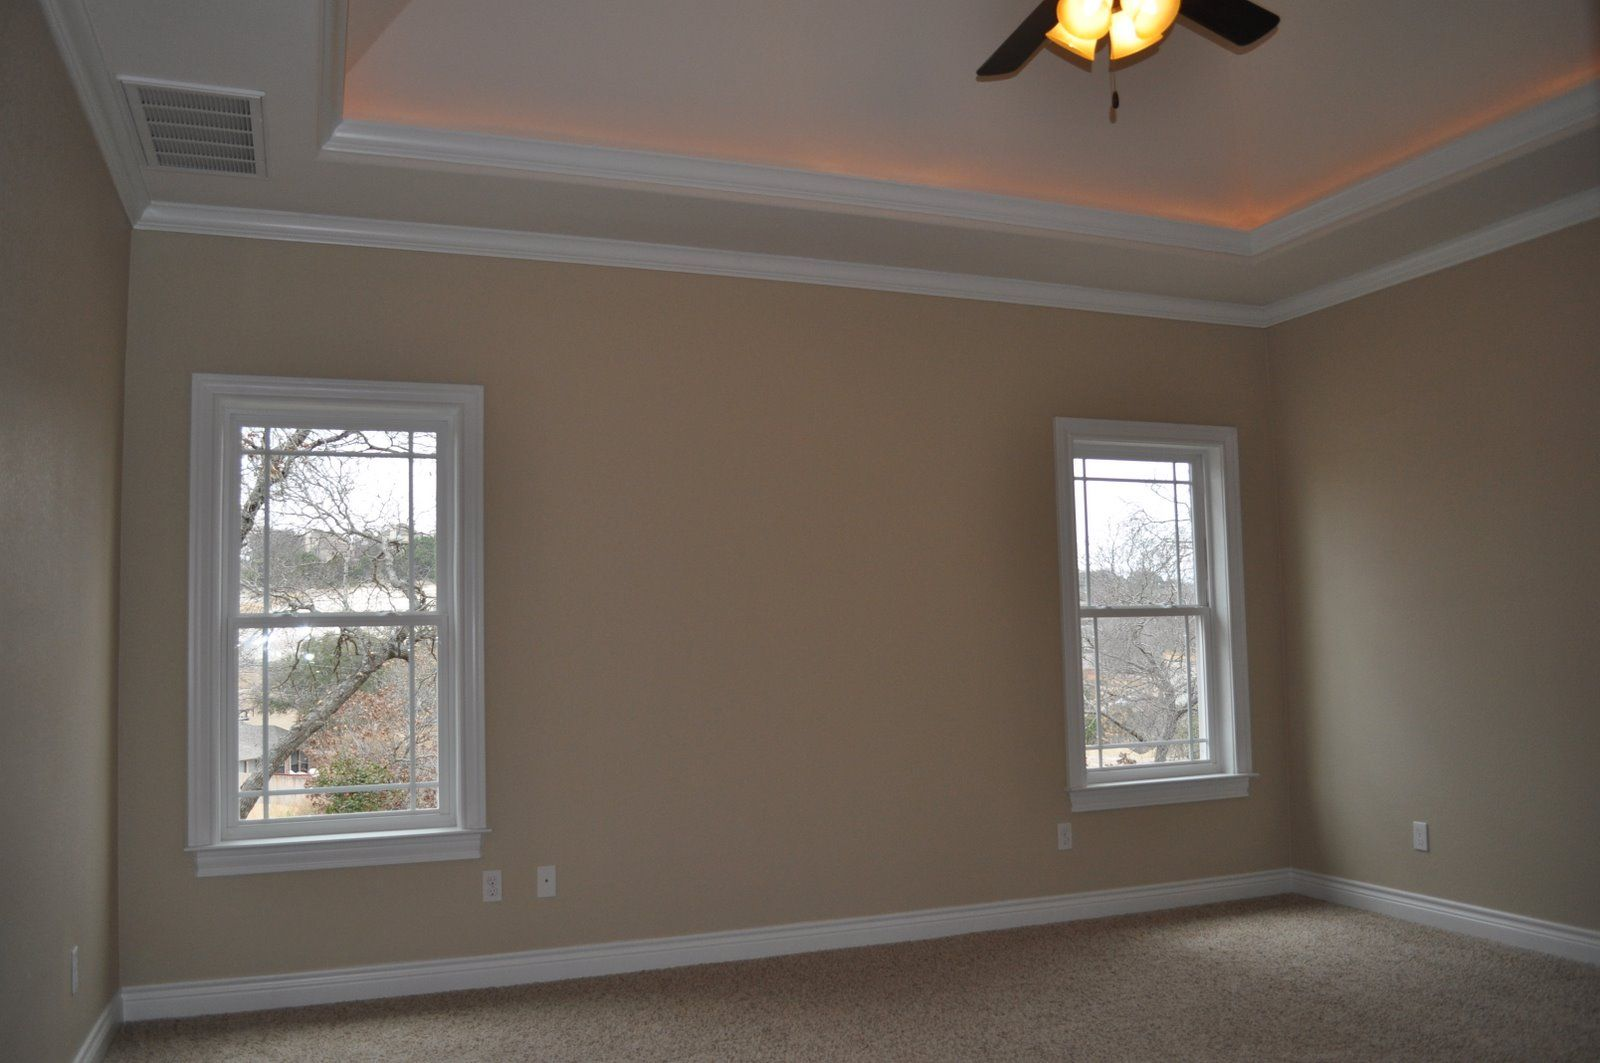 tray lighting ceiling. Tray Ceiling Crown Molding With Lights | Ceilings Lighting I